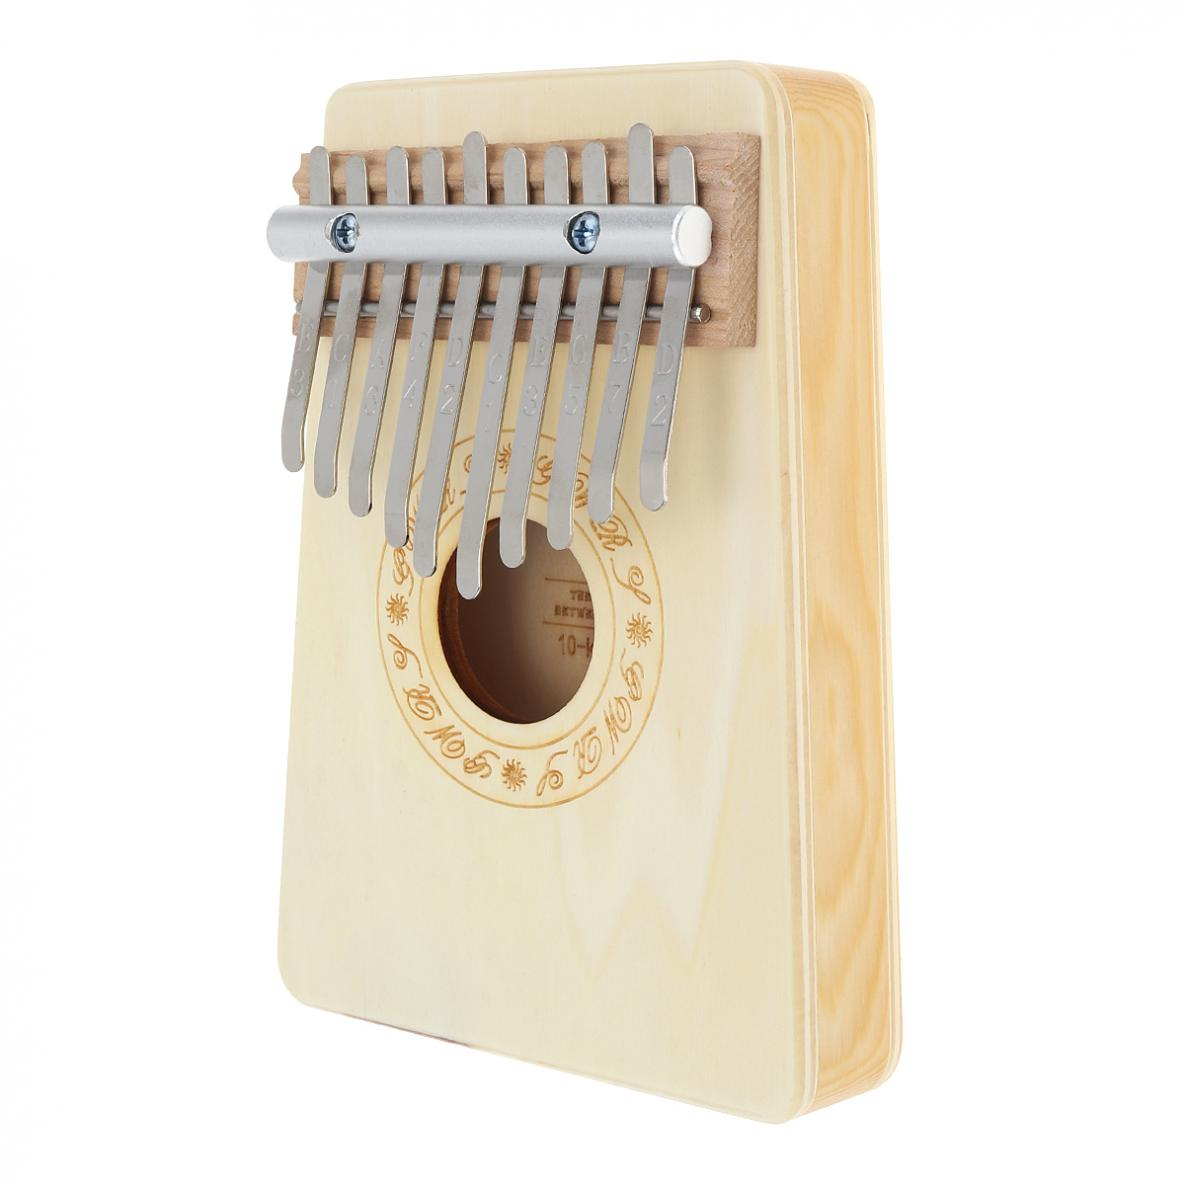 Купить с кэшбэком 10 Keys Kalimba Mbira Thumb Piano High Quality Pine Light Yellow Wood Portable Durable Instruments Pine Aluminum Bar